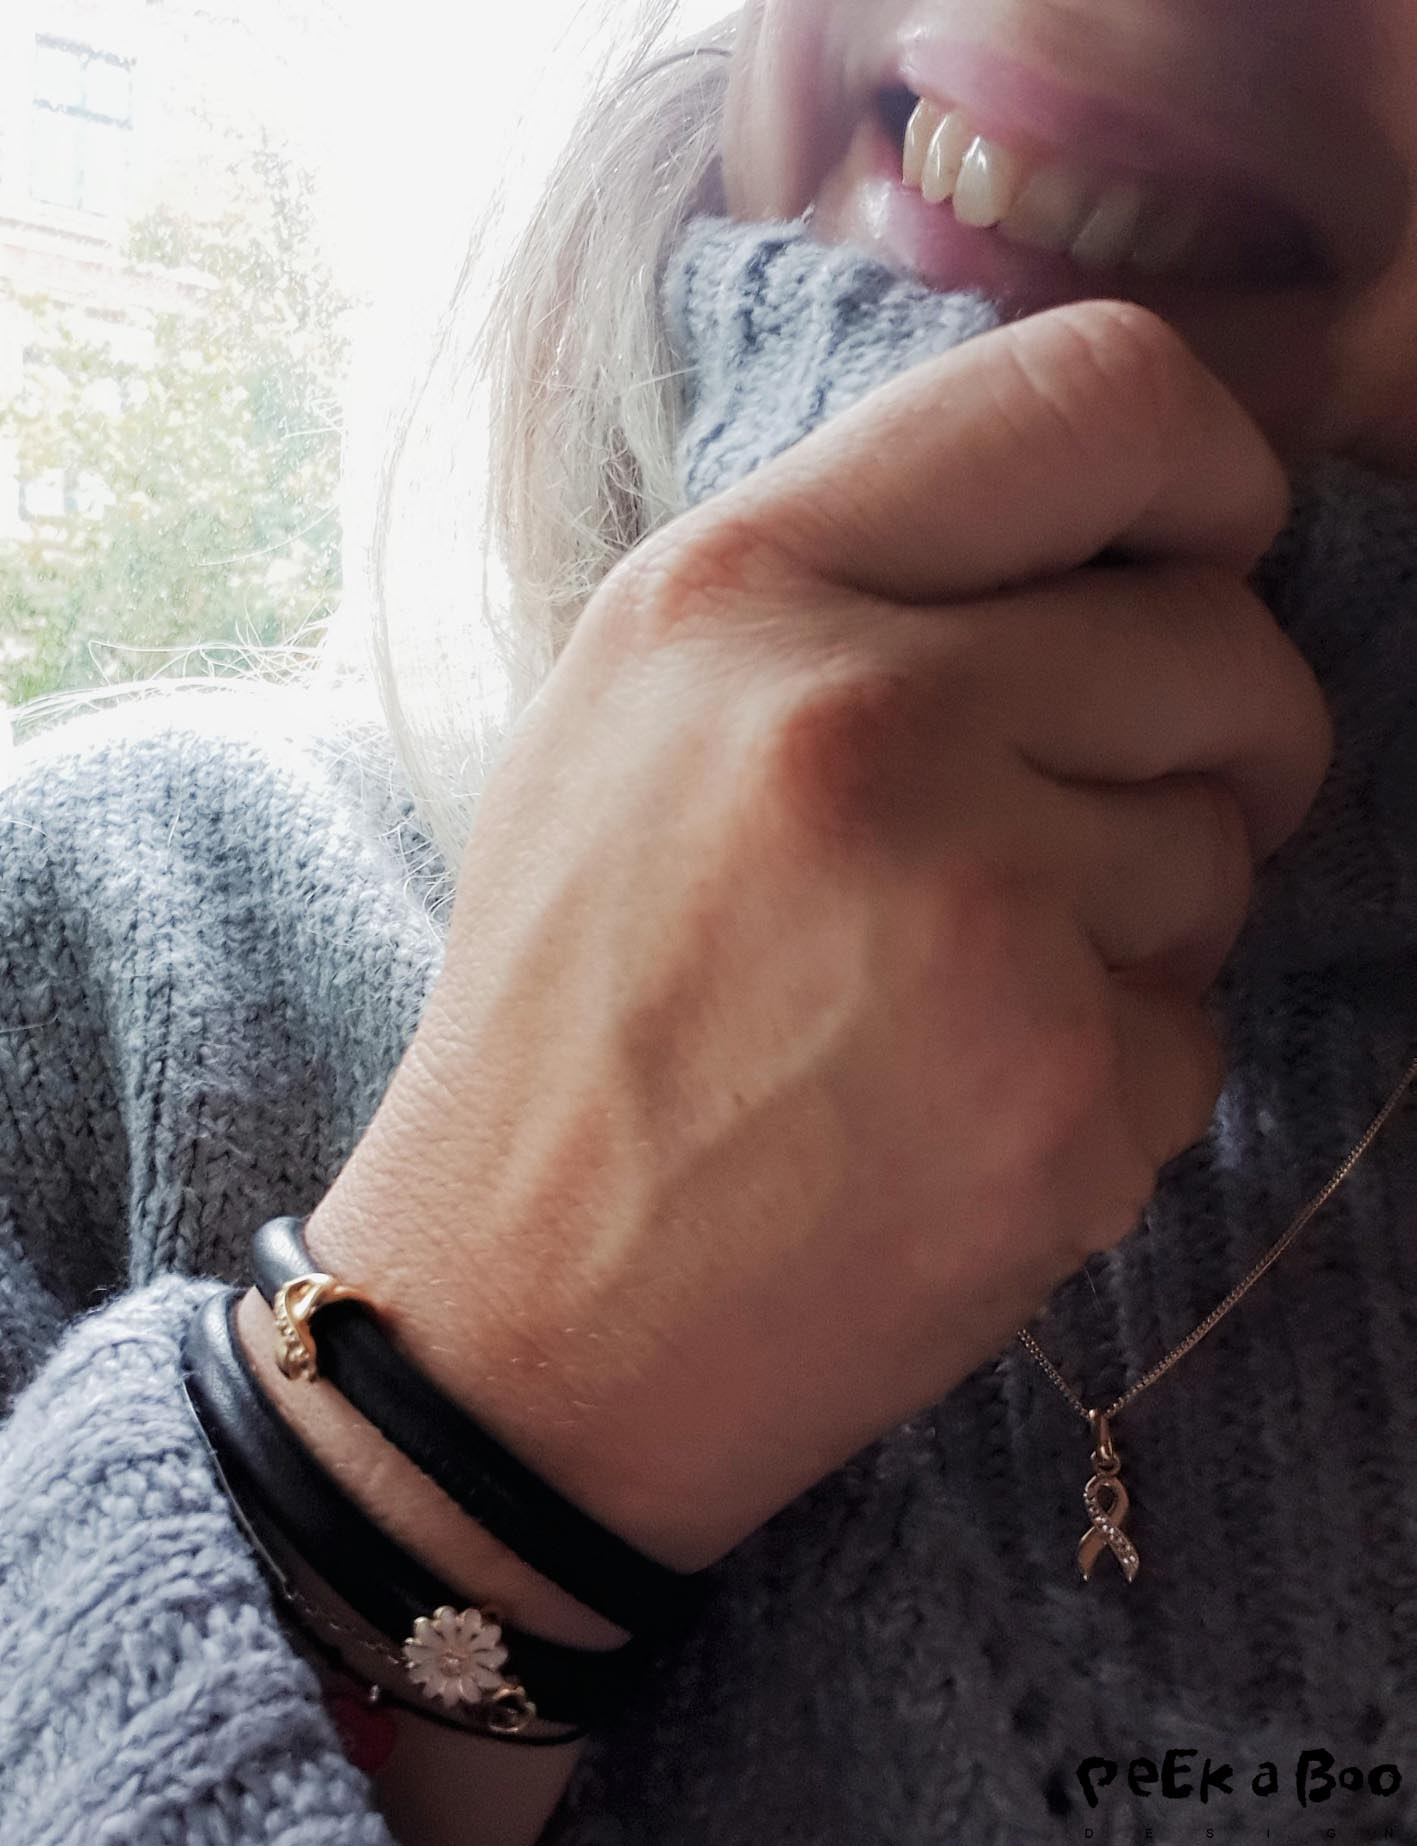 New jewellery from Christina jewelry that gives a share of the profit to the cancer research. Kræftens Bekæmpelse.